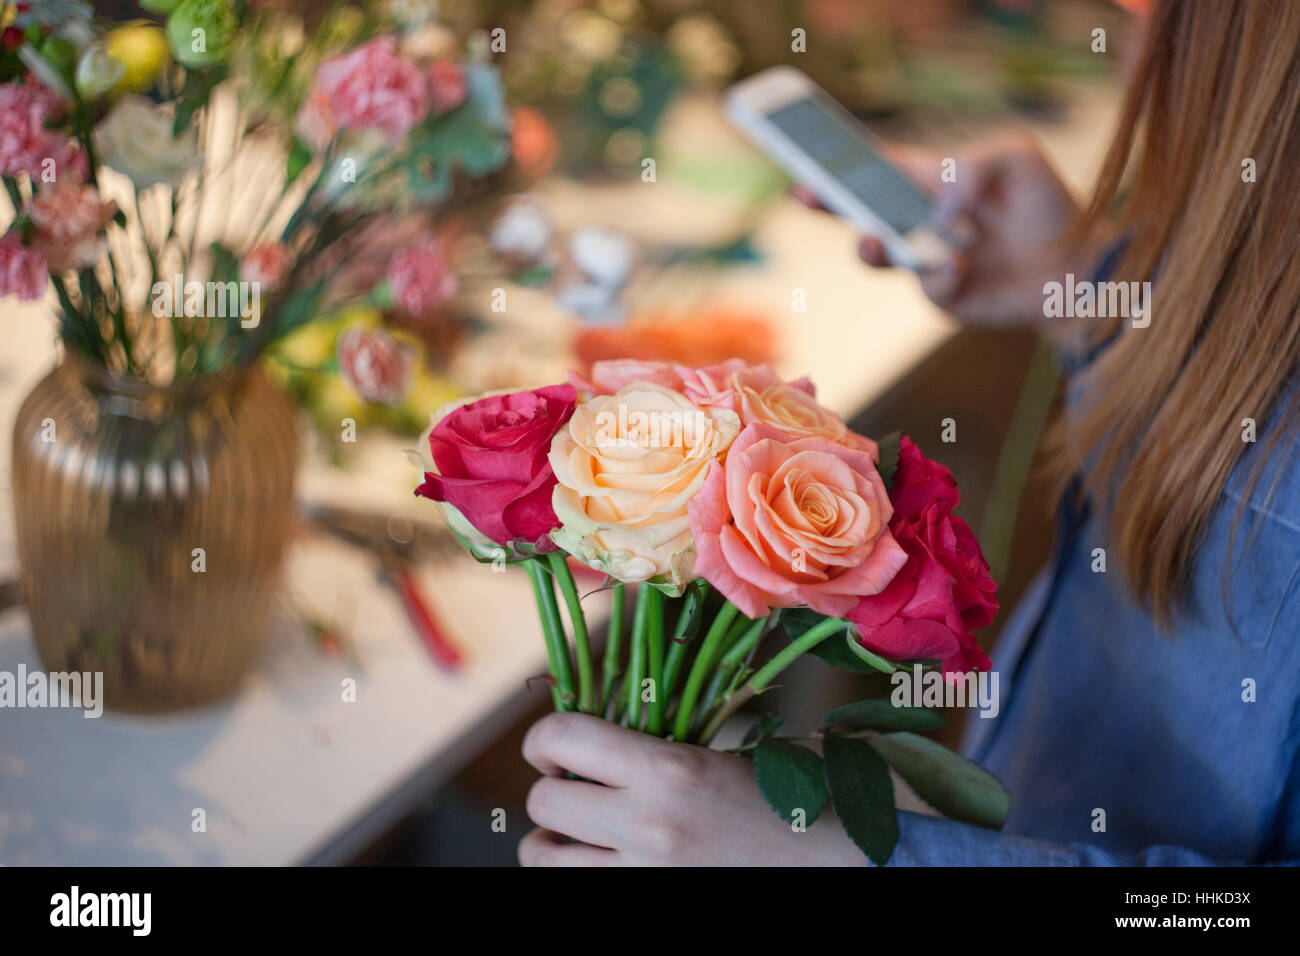 Workshop florist making bouquets and flower arrangements woman workshop florist making bouquets and flower arrangements woman collecting a bouquet of roses soft focus izmirmasajfo